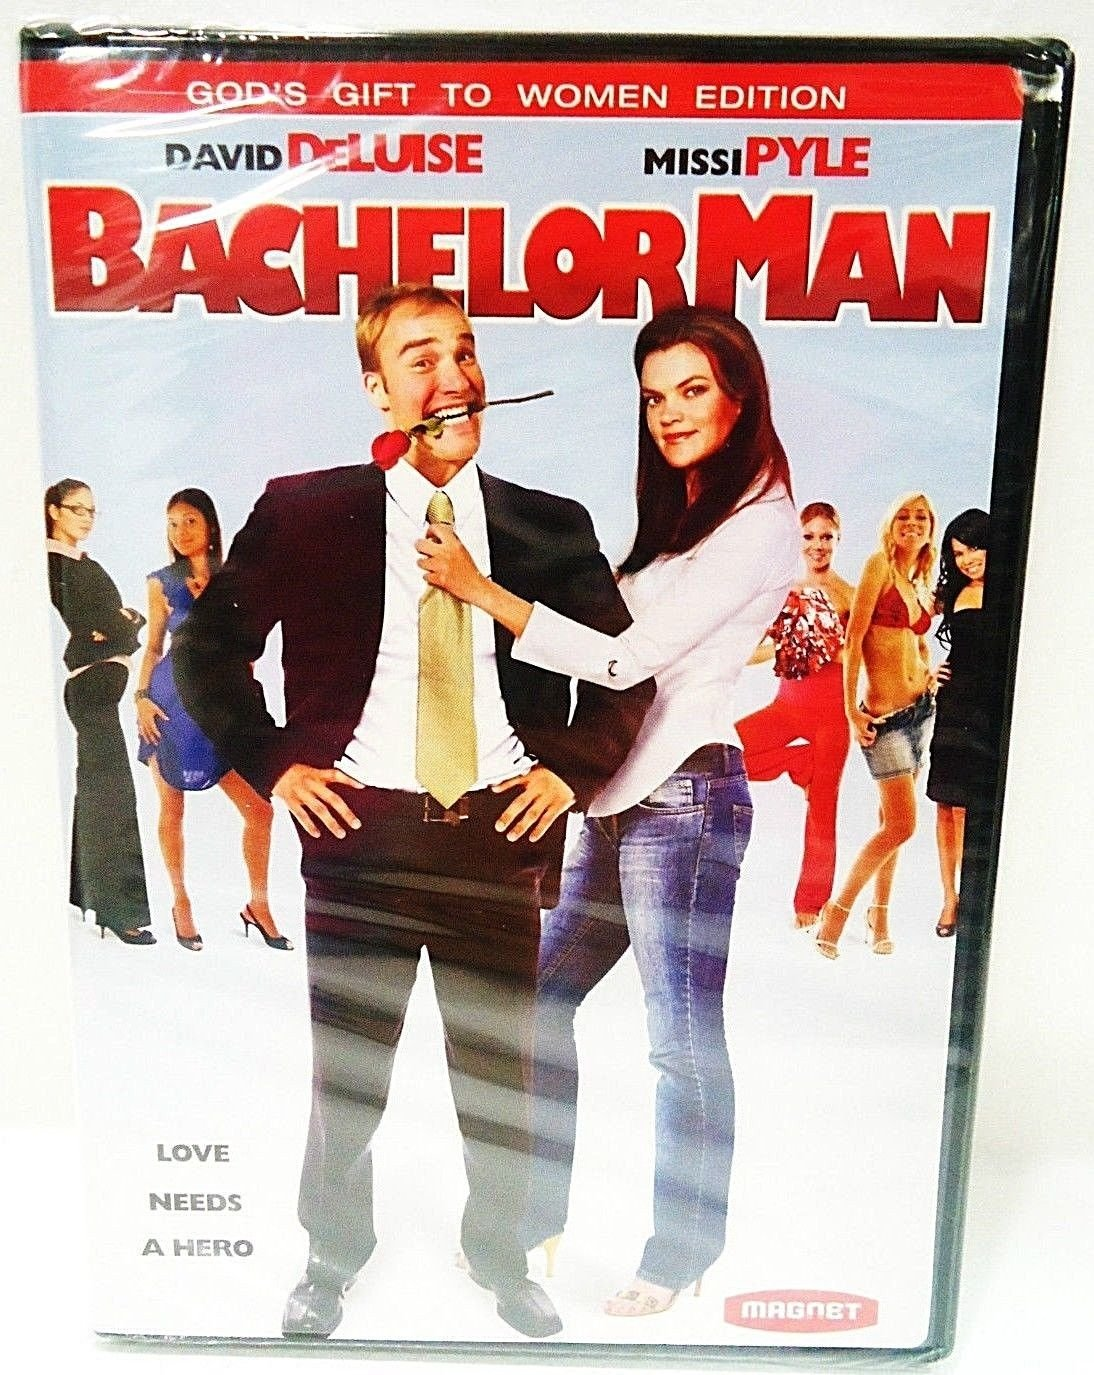 BACHELOR MAN - DVD - DAVID DELUISE - MISSI PYLE - NEW - SEALED - COMEDY - MOVIE